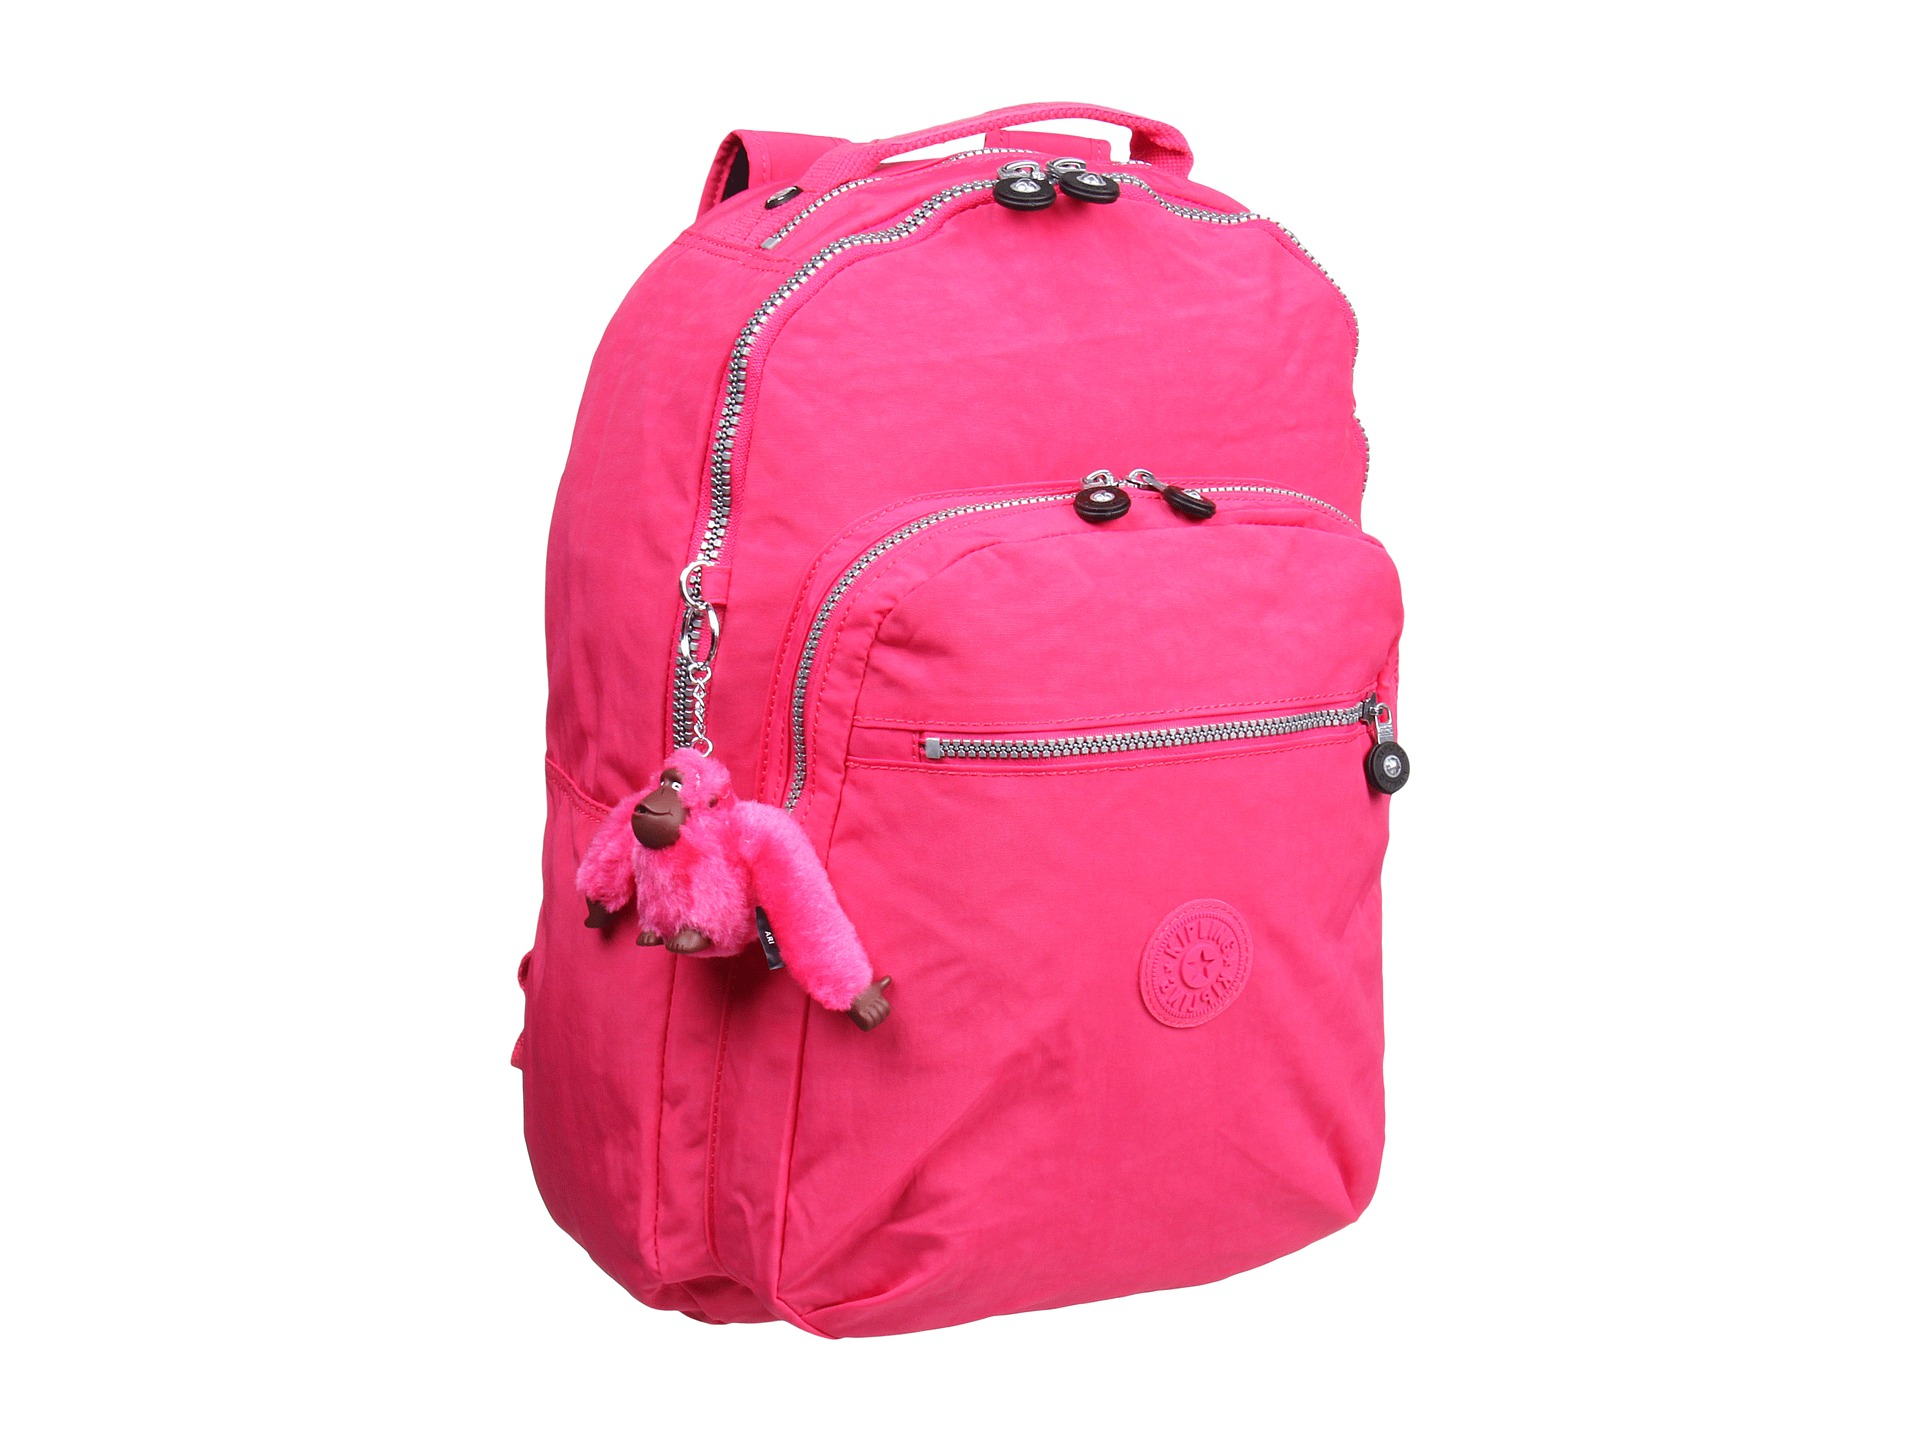 Kipling BP Goddard Gray Backpack Laptop Limited Edition for Macy's $ New See more like this.